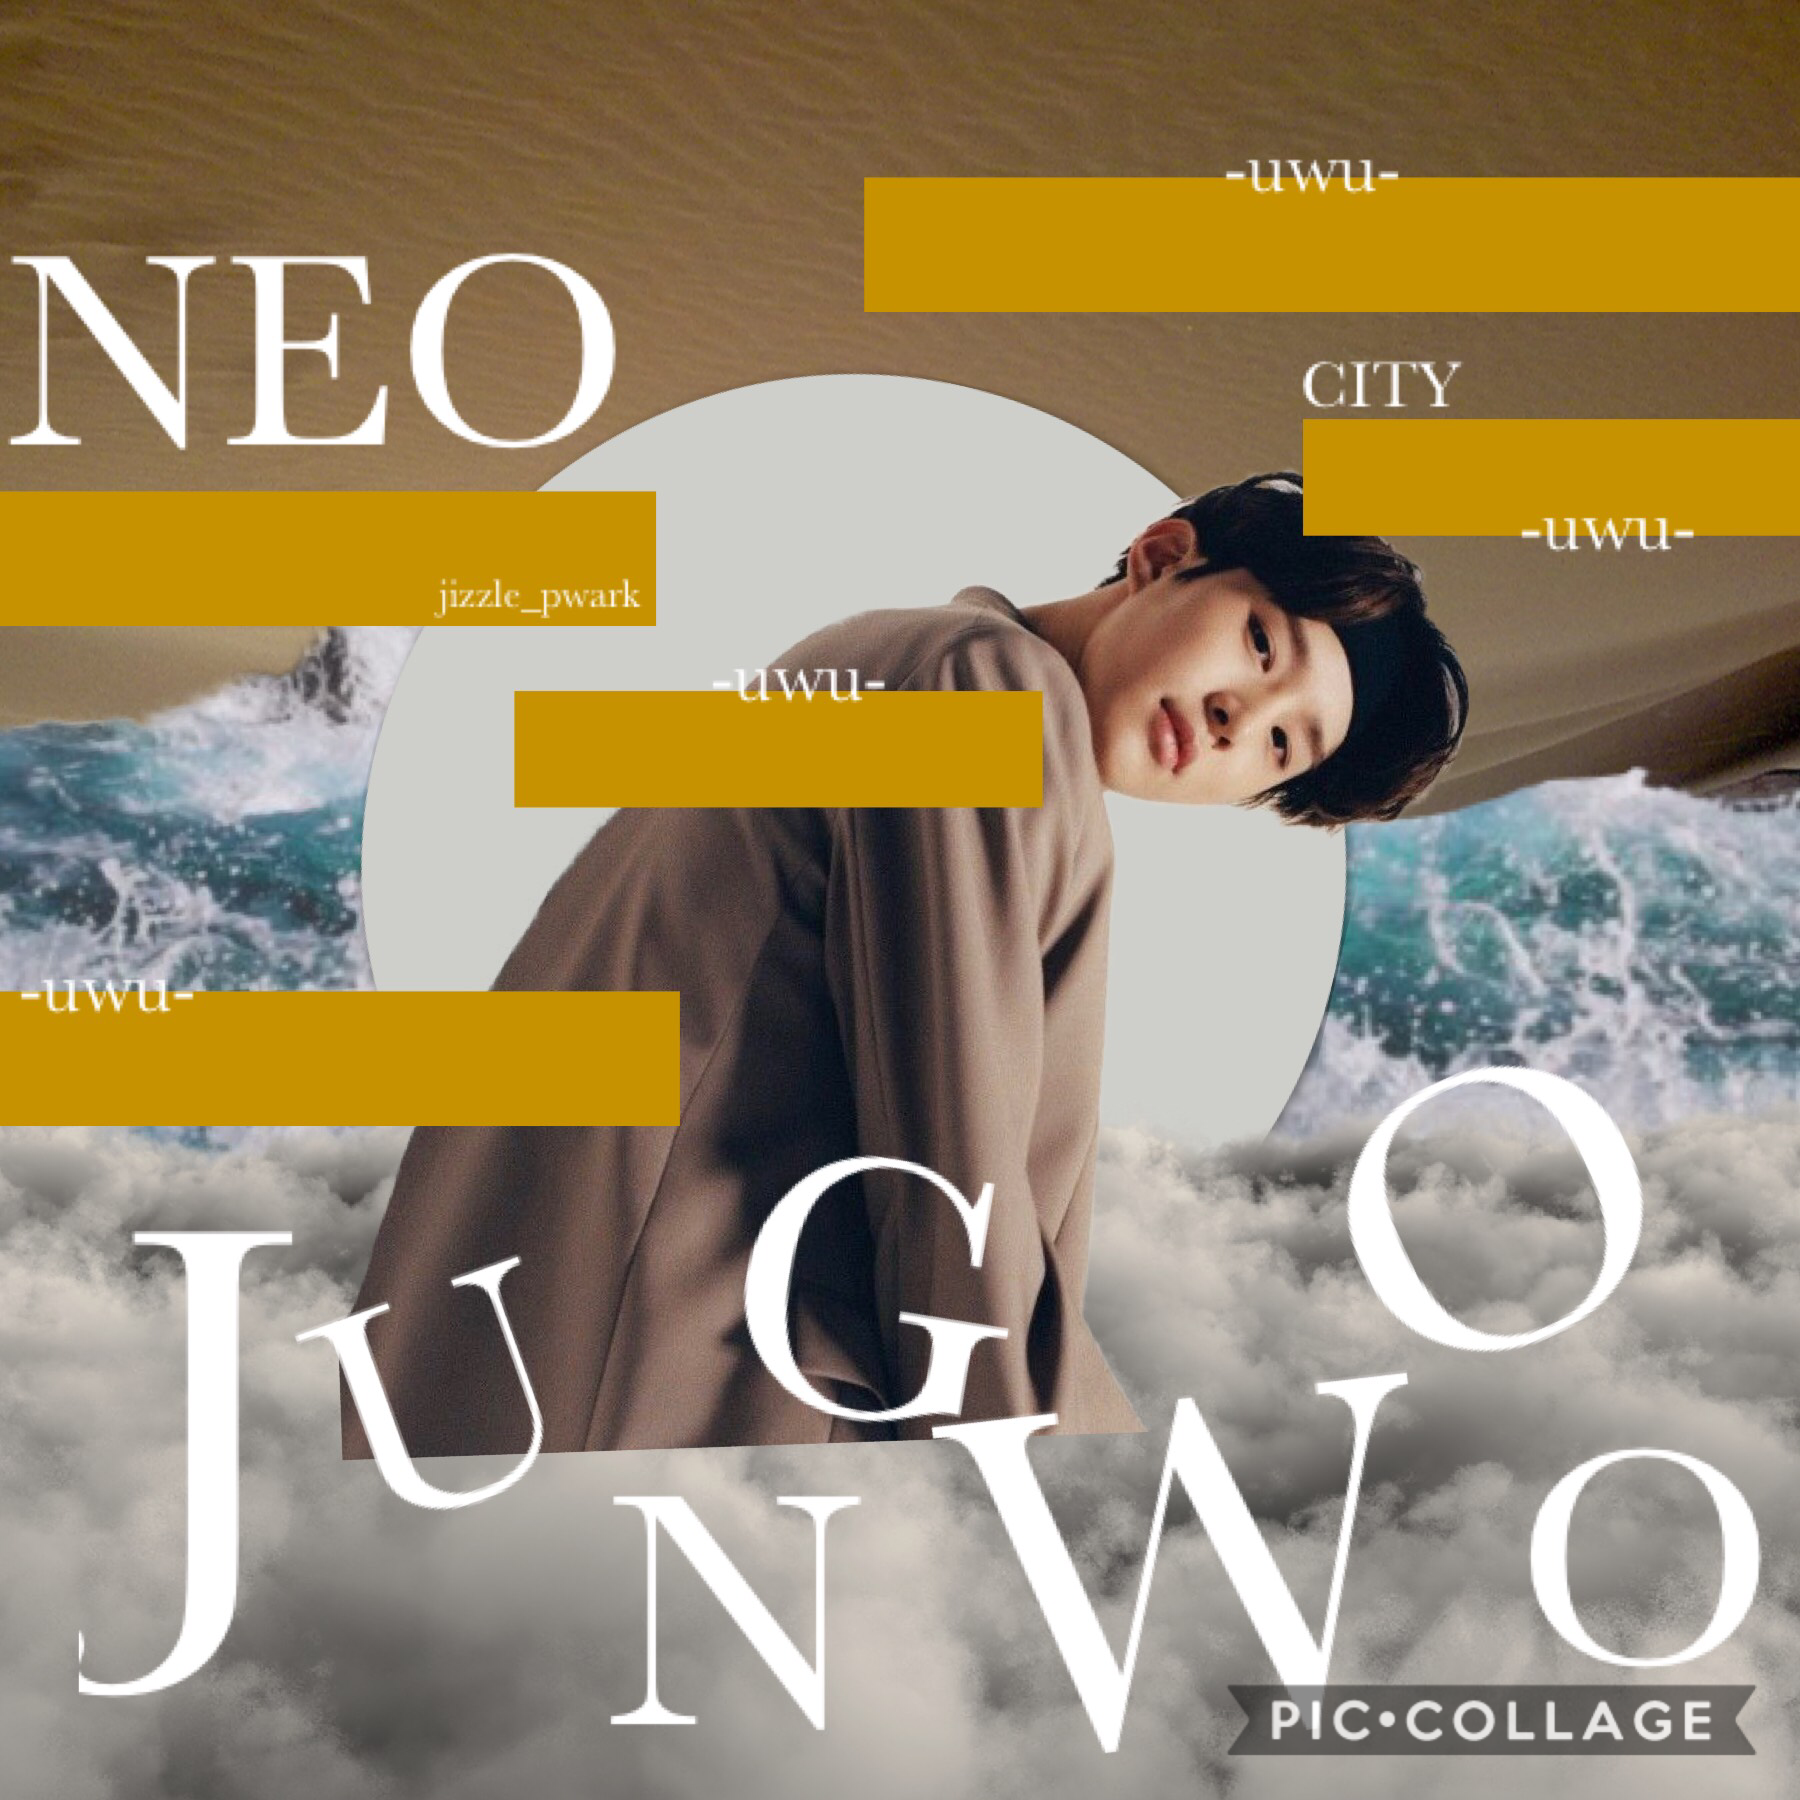 Jungwoo Edit inspired by the amazing @1LLUS10NS!